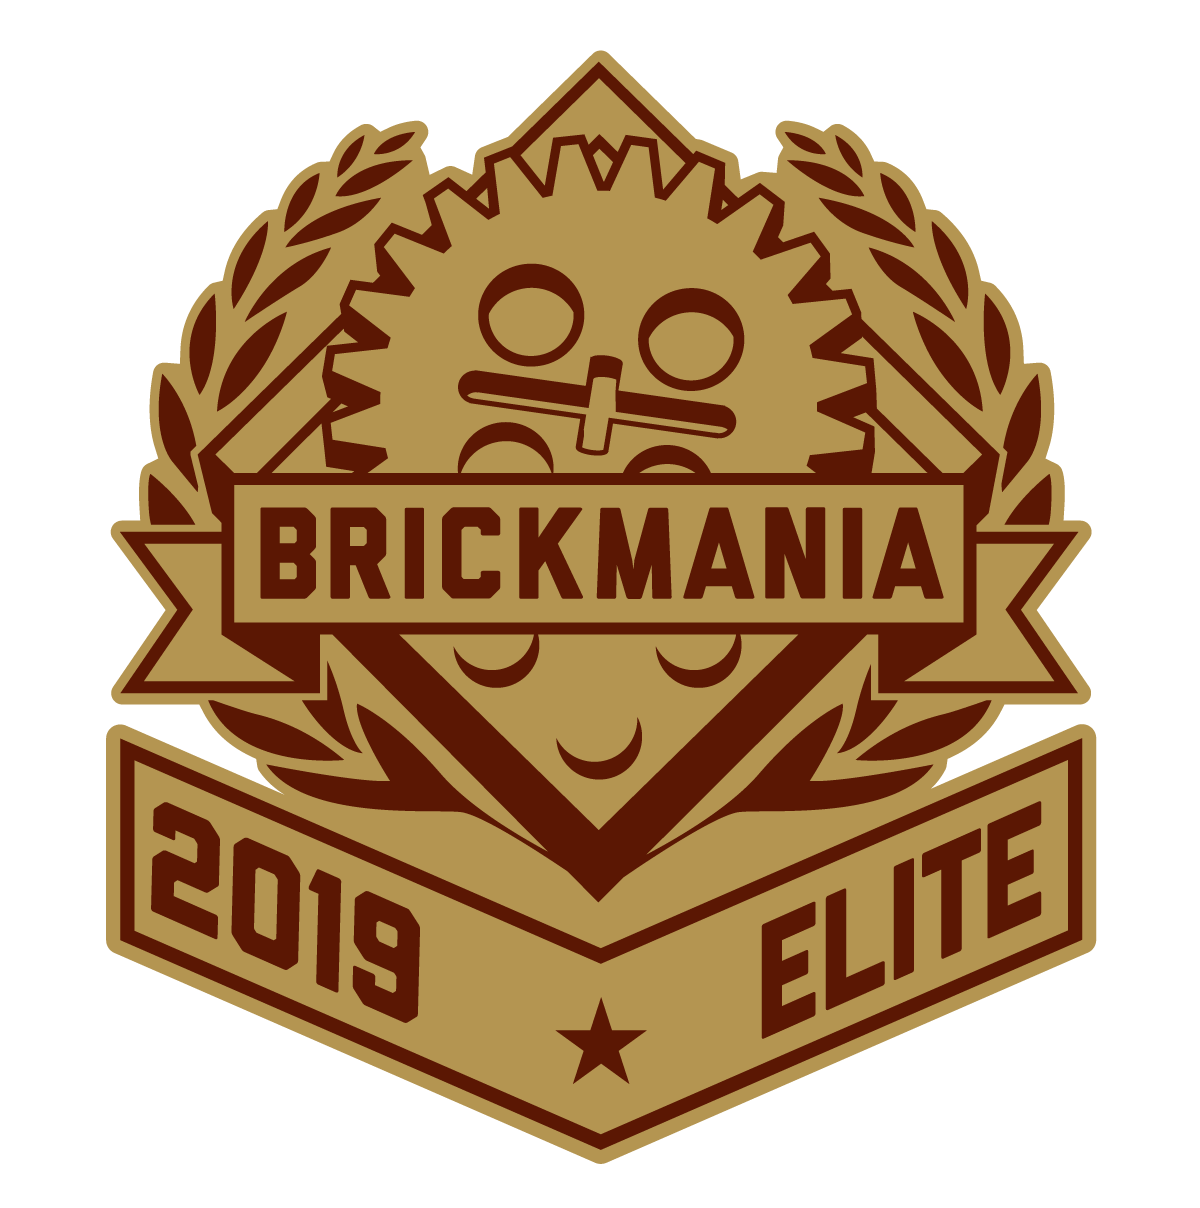 Brickmania Elite 2019